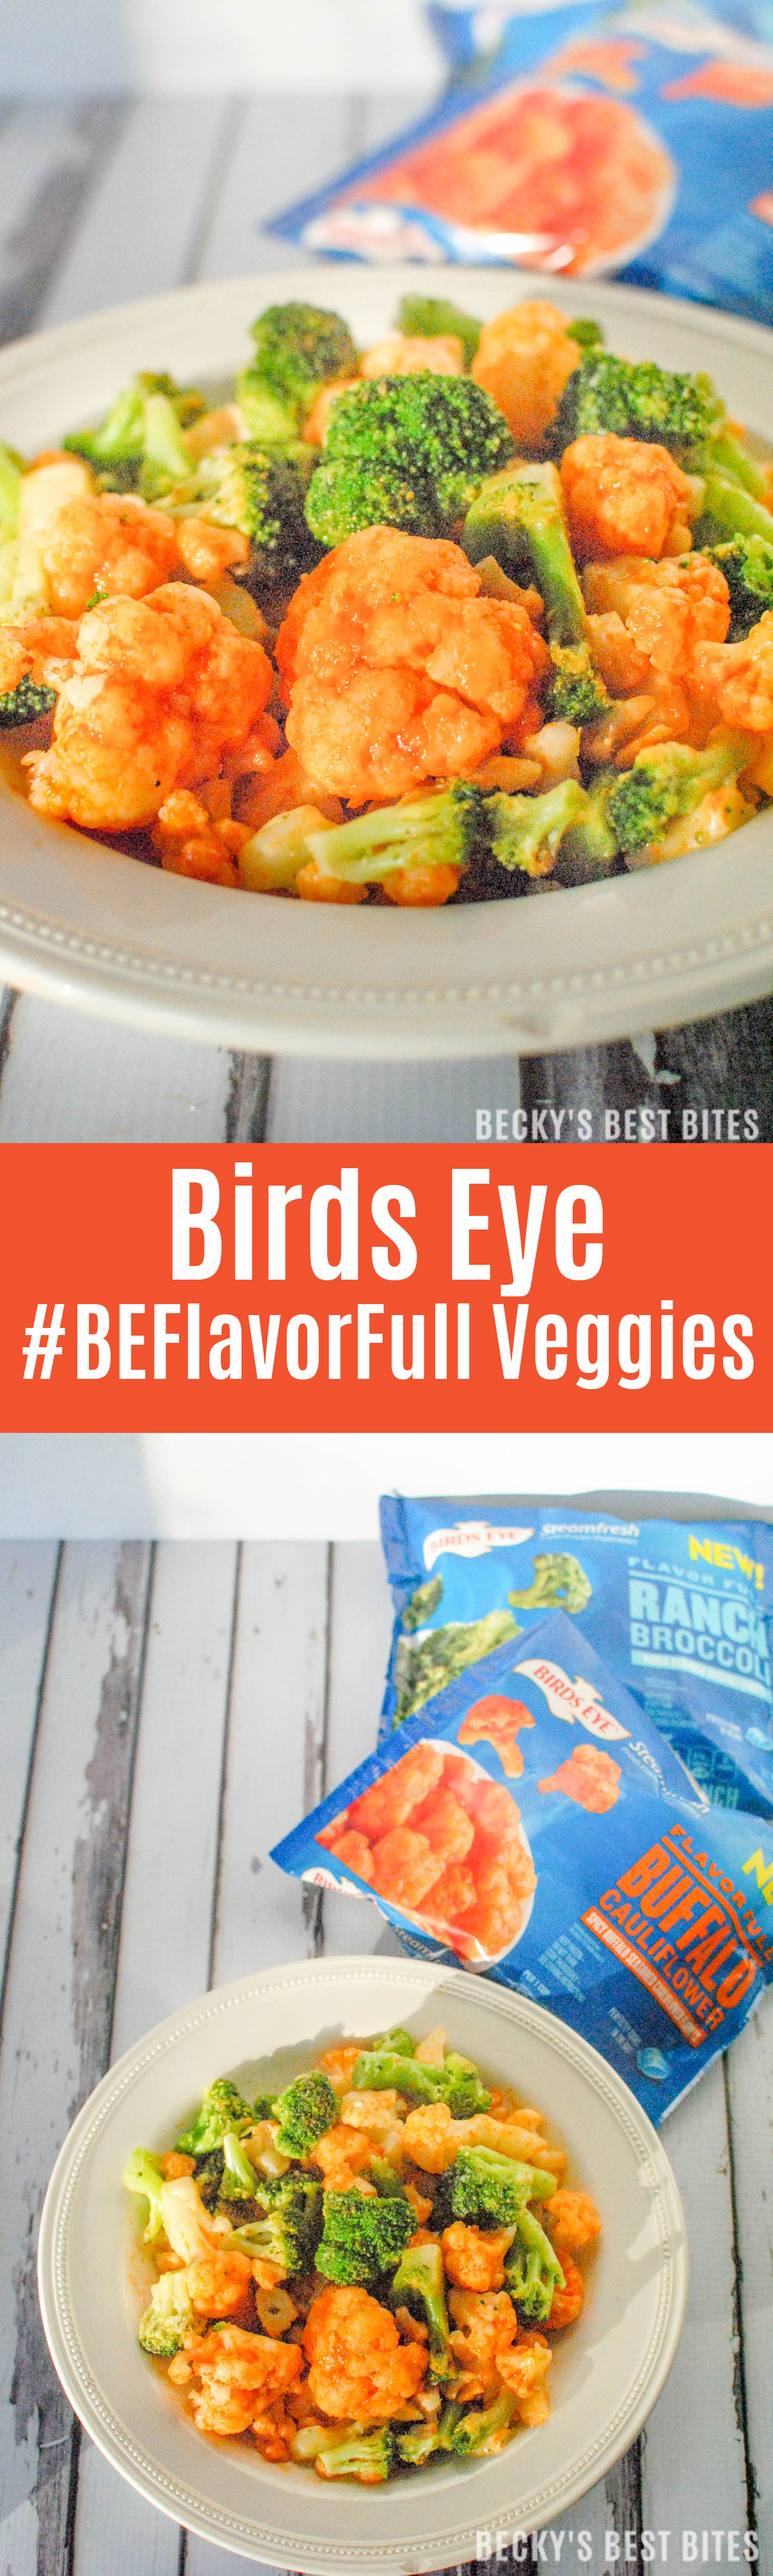 It is so easy Birds Eye #BEFlavorFull Veggies into a busy lifestyle. Steamfresh packaging makes preparing these nutritious & delicous vegetables a breeze. #ad